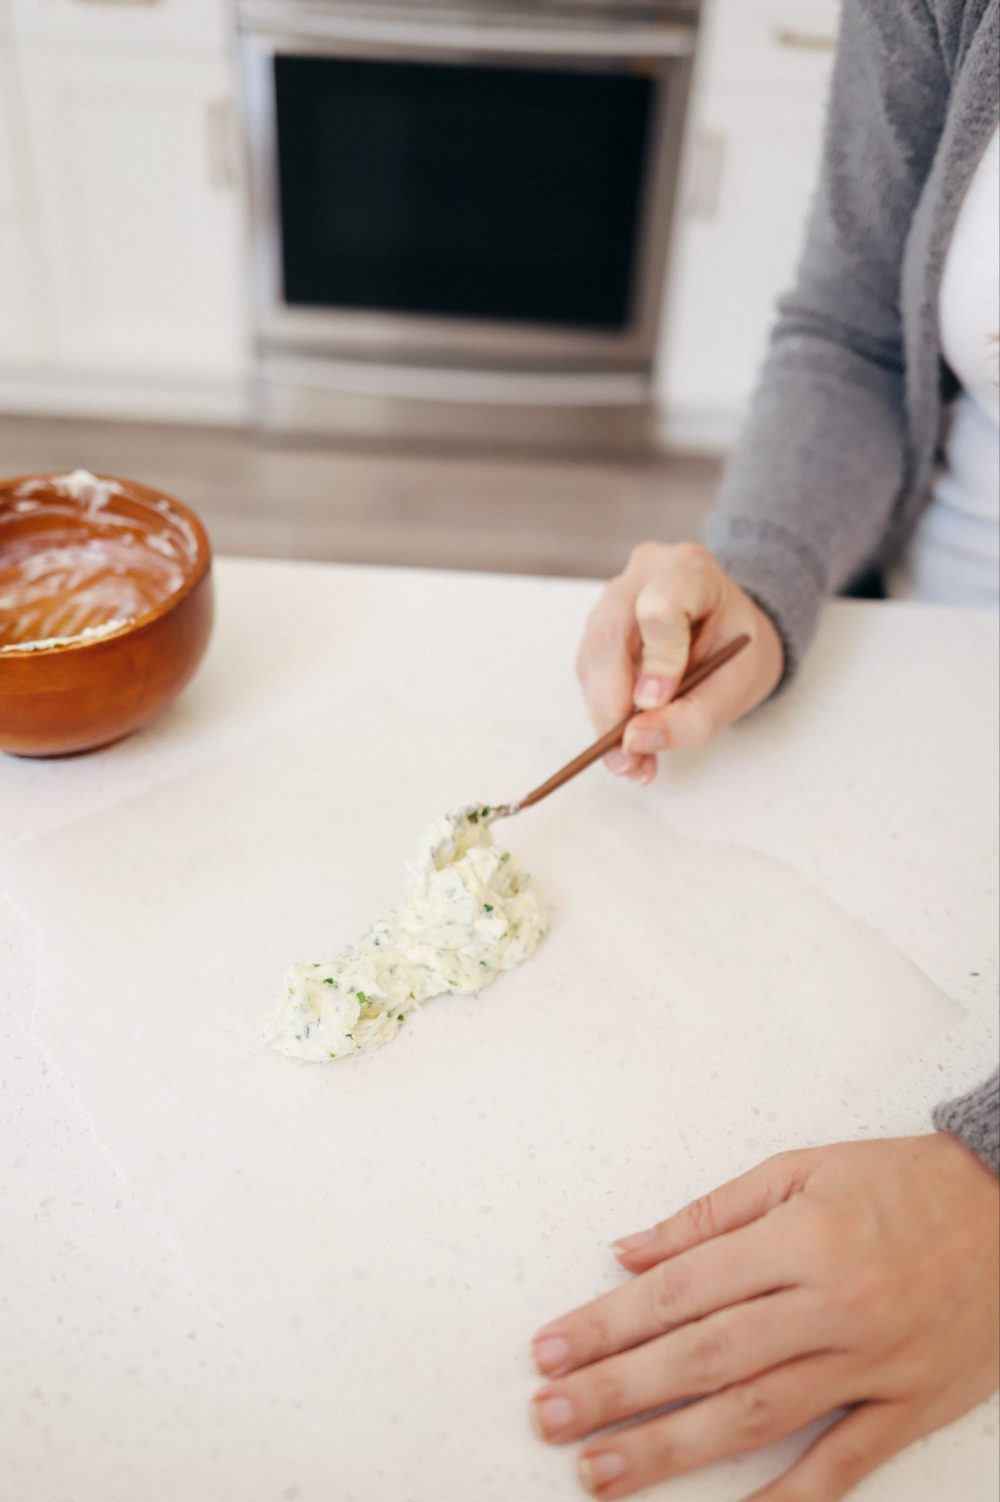 Homemade Steak Butter: How to Make an Easy Steakhouse Herb Butter for Steak  Steak Butter by popular Florida lifestyle blog, Fresh Mommy Blog: image of a woman spreading butter on some wax paper.